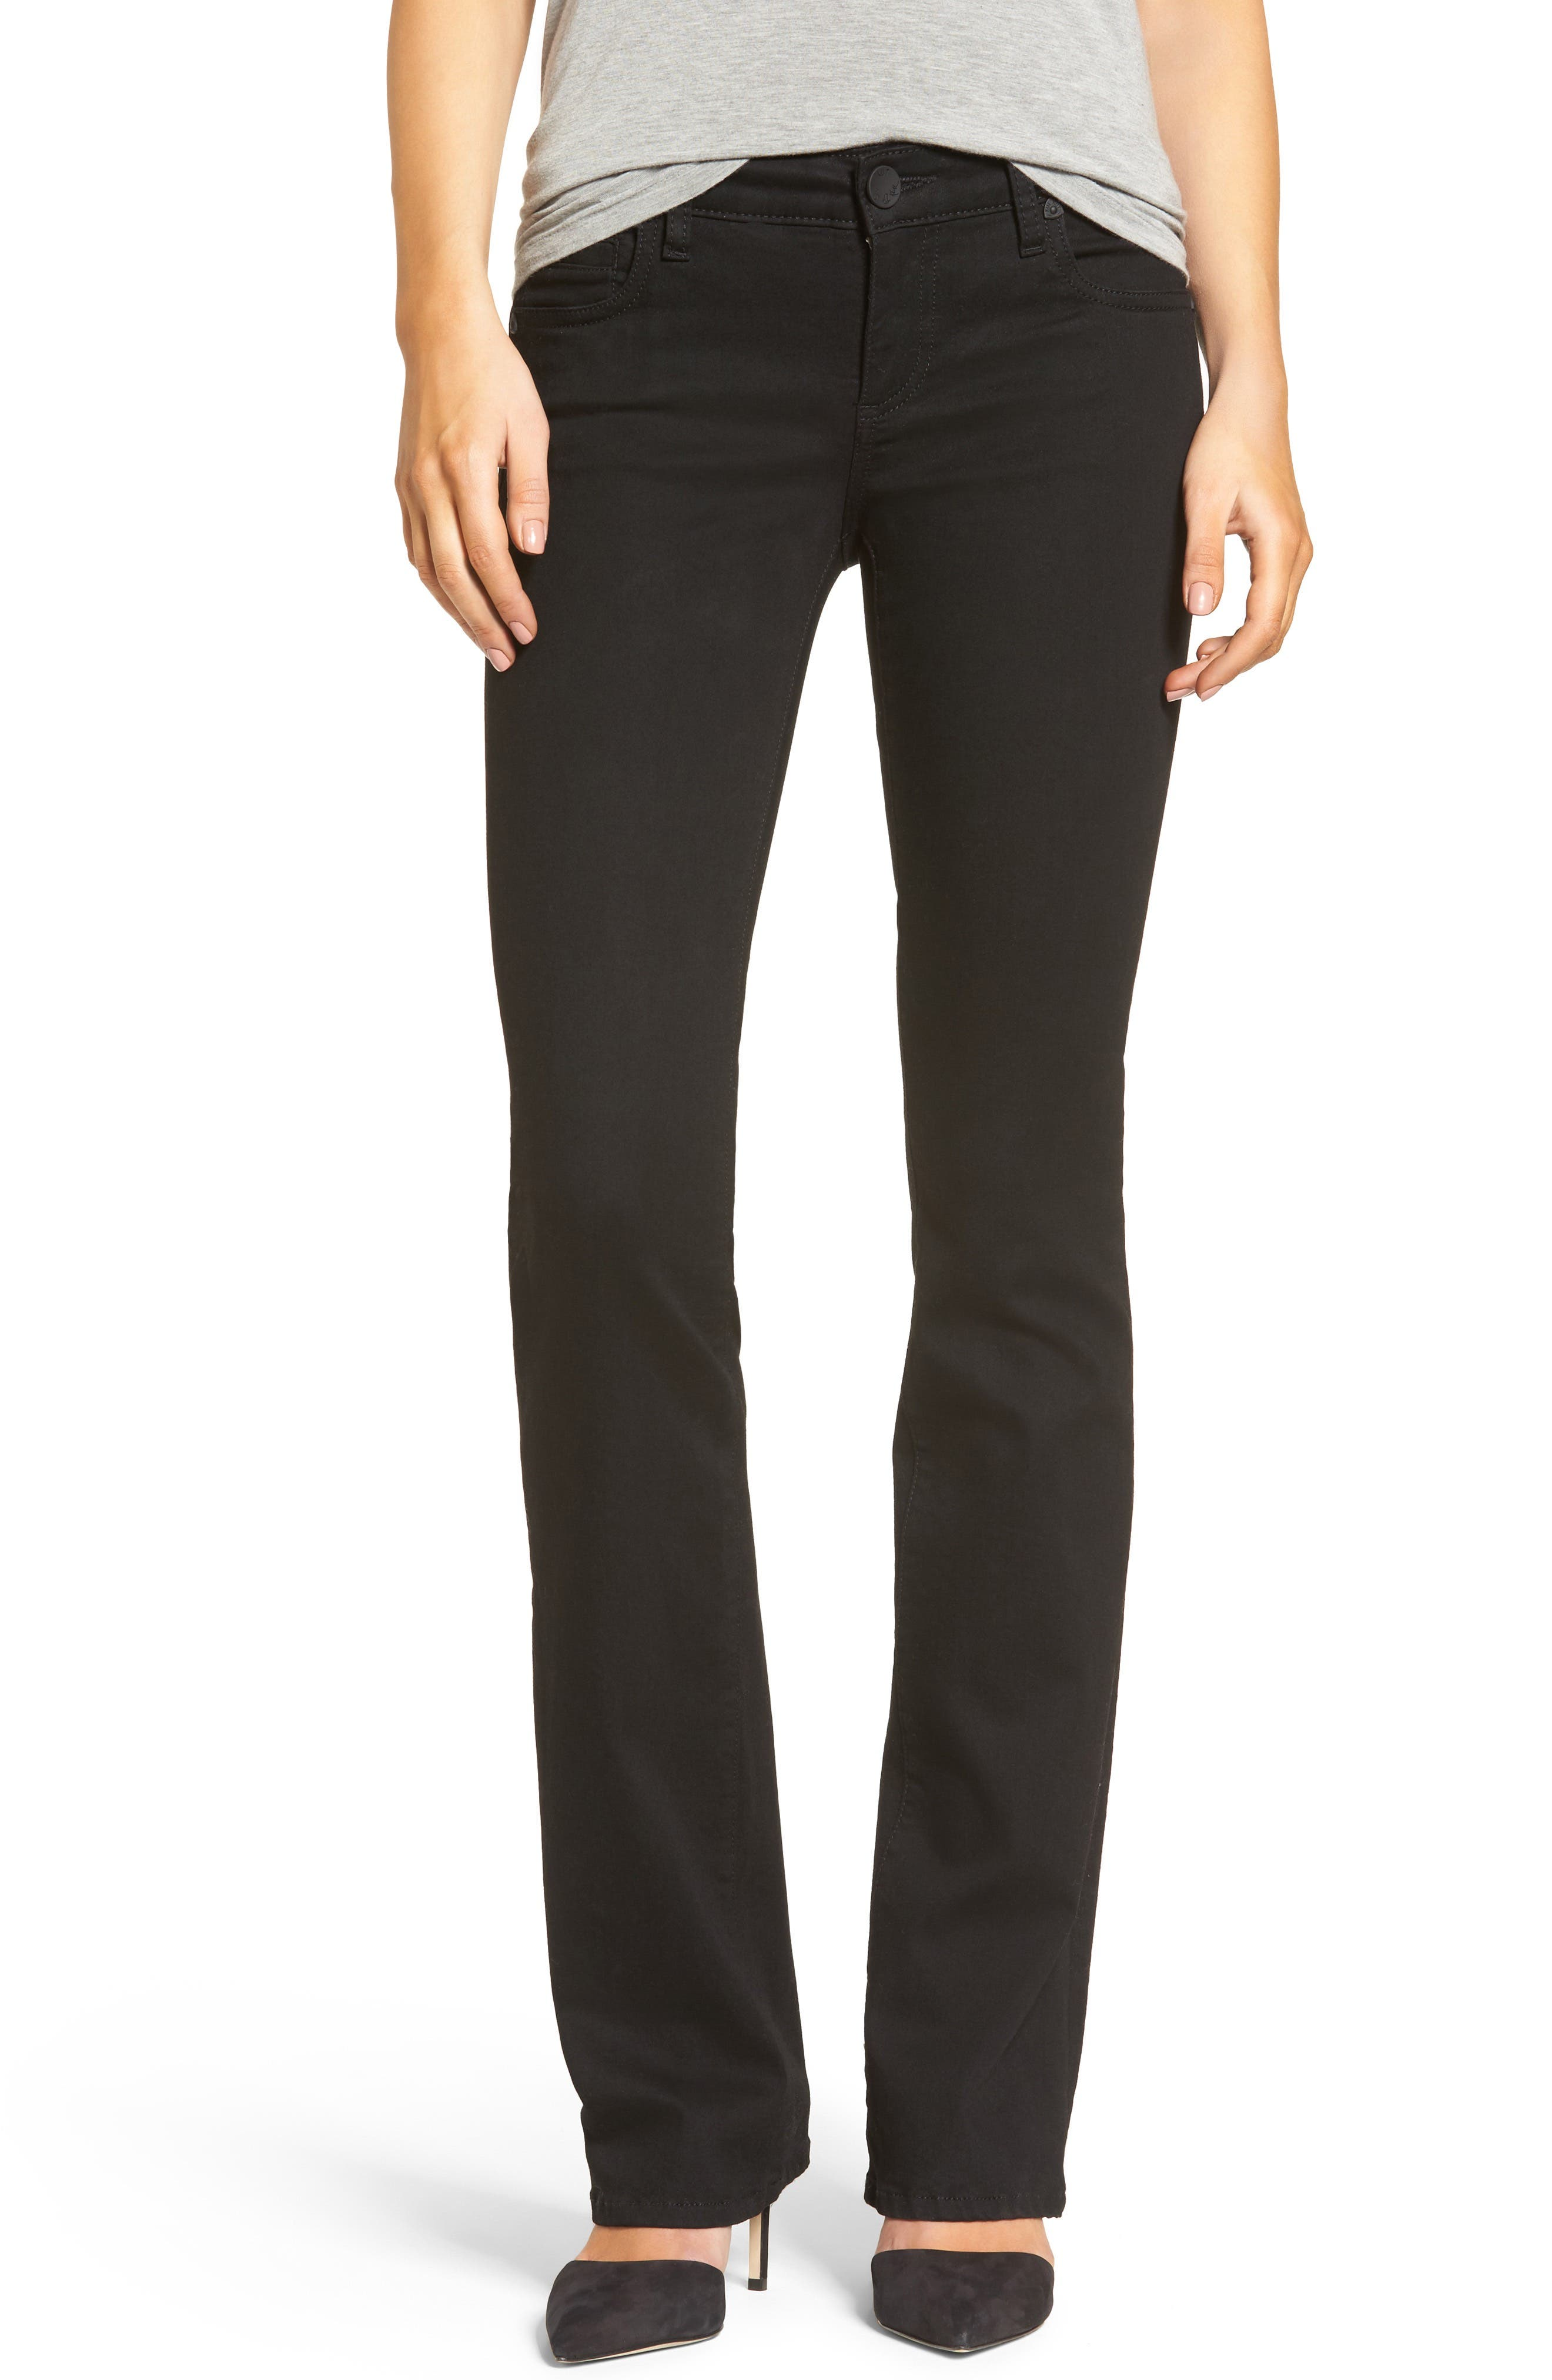 Natalie Stretch Bootleg Jeans,                         Main,                         color, 002